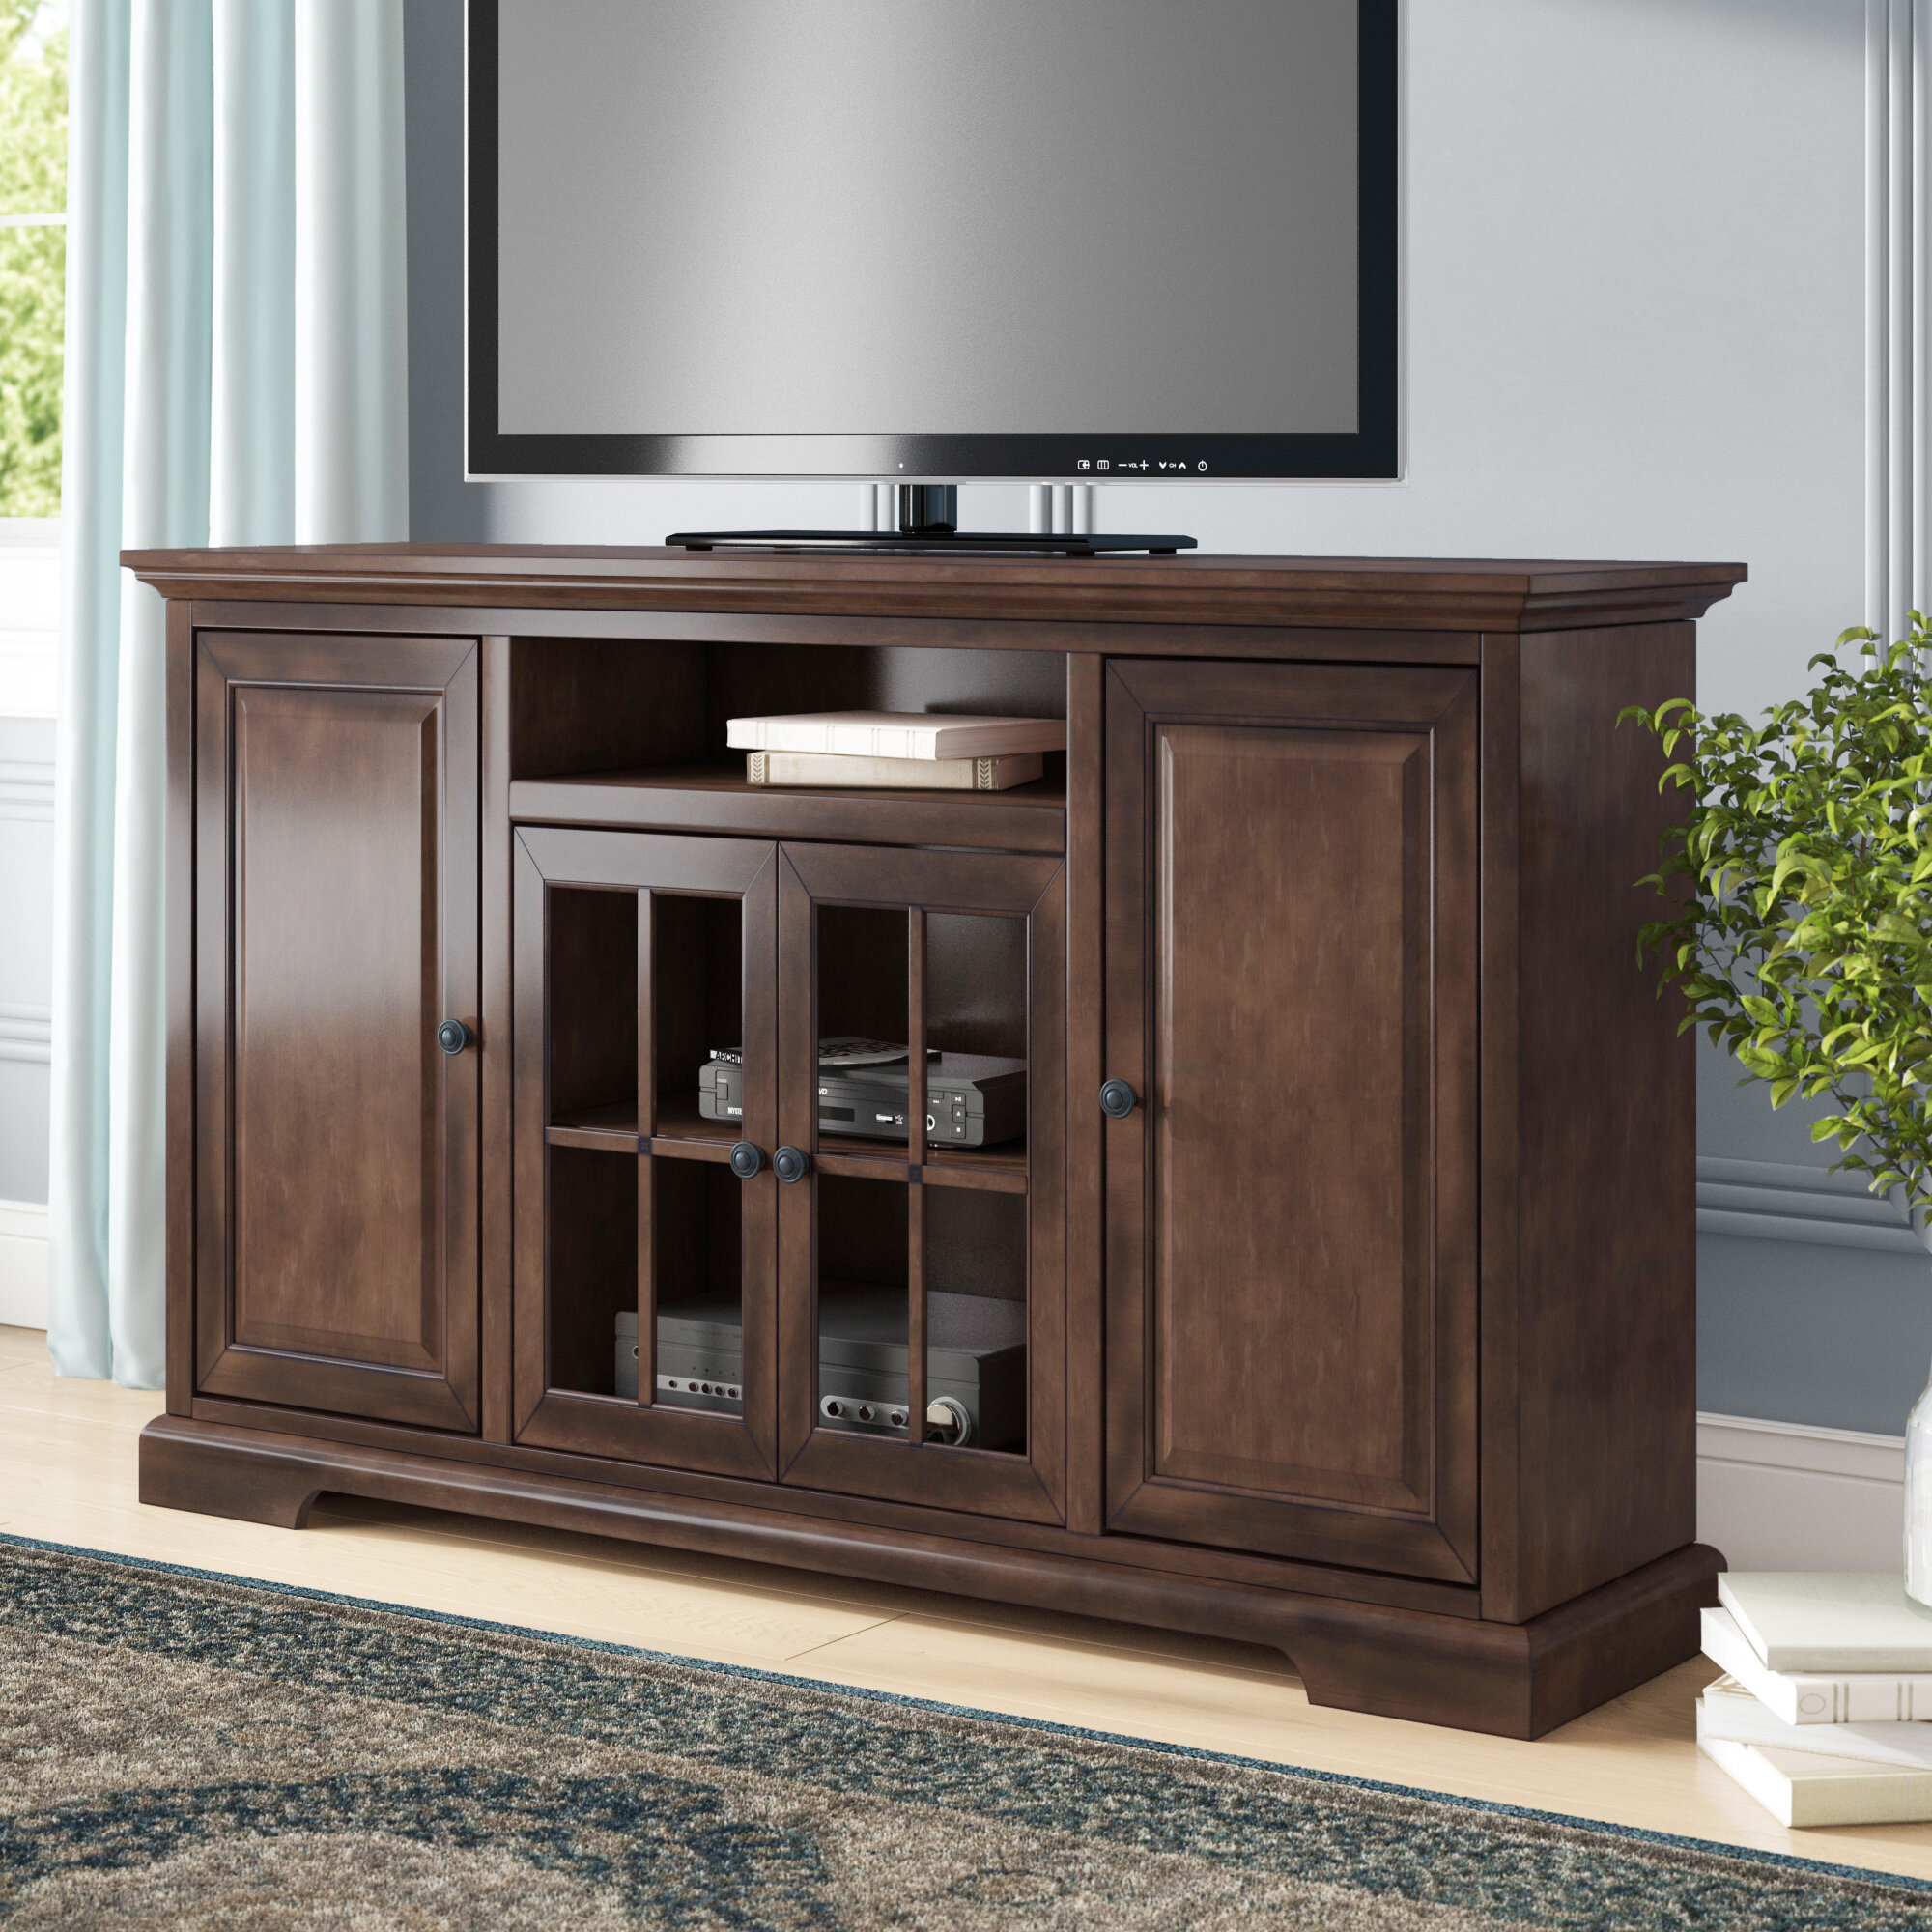 Darby Home Co Legrand Tv Stand For Tvs Up To 70 Reviews Wayfair